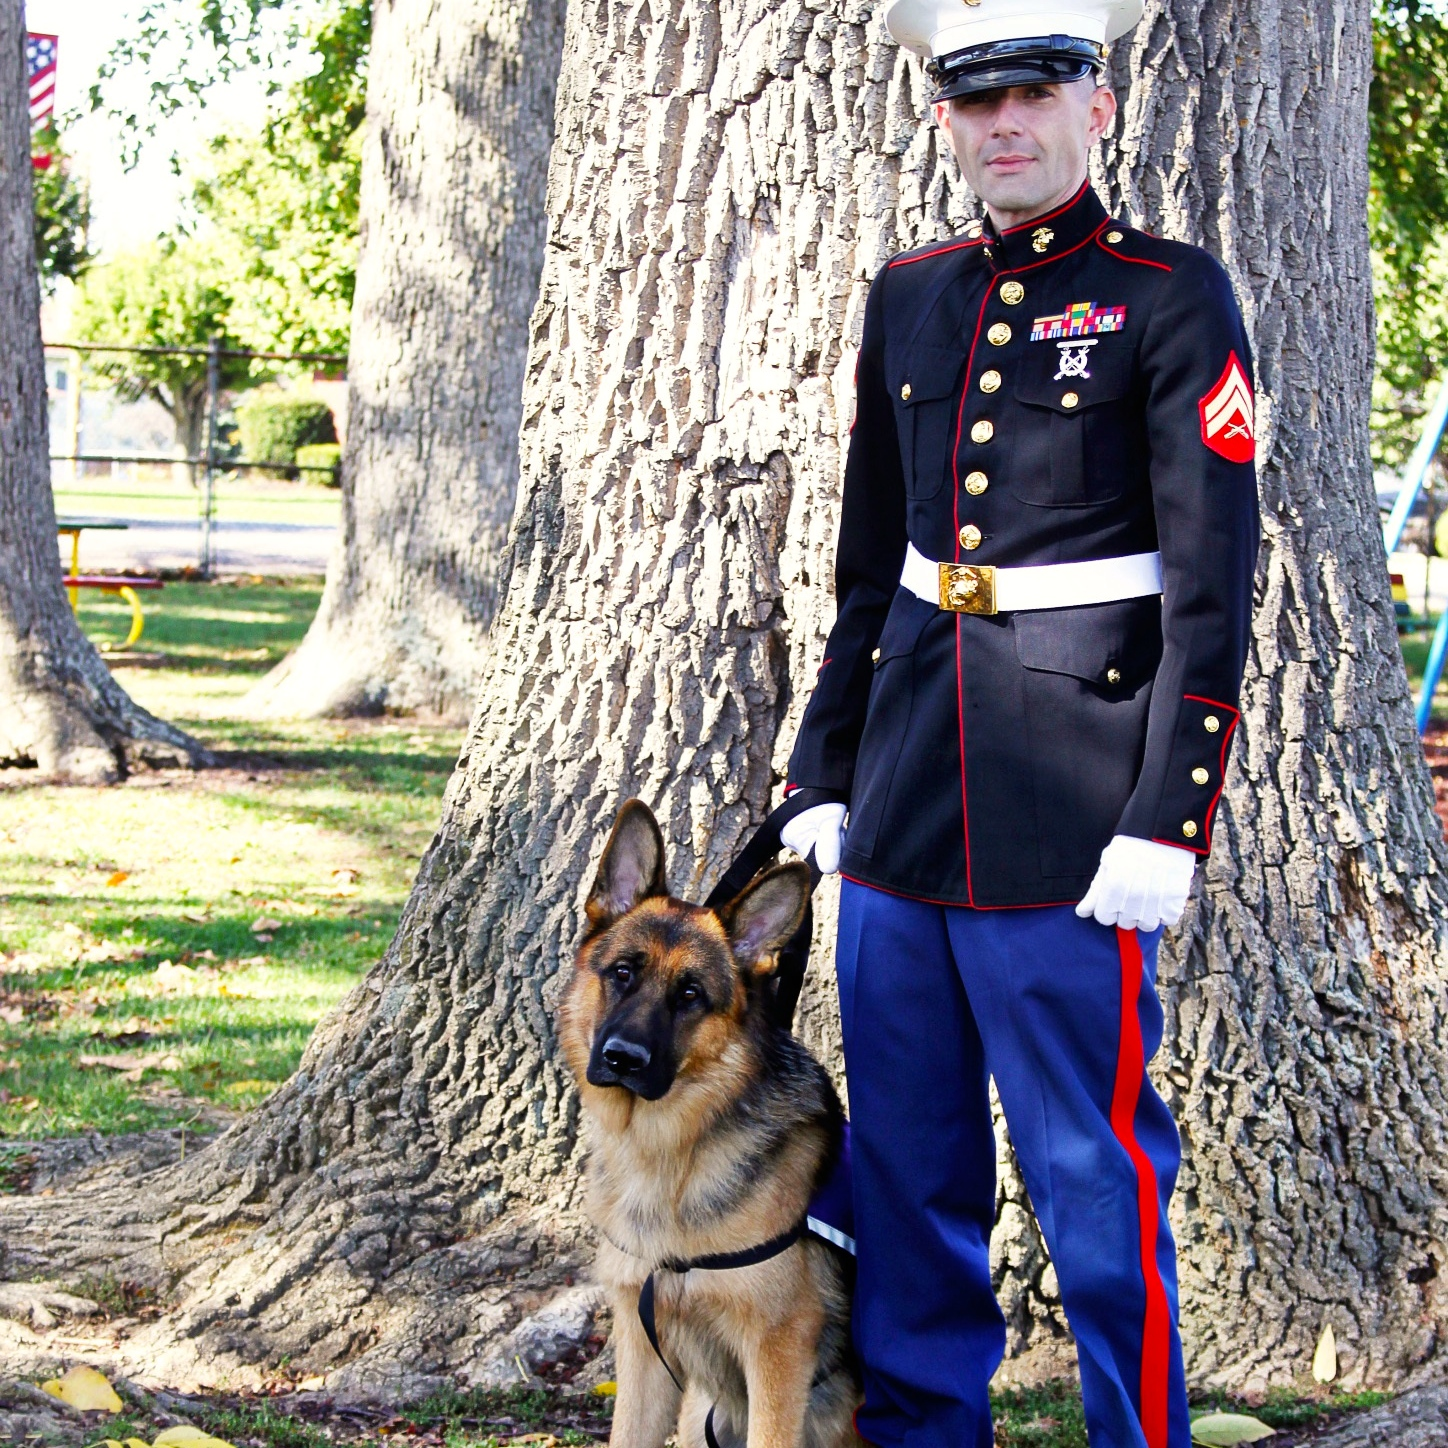 Battle Buddy: Fully Sponsor Service Dog Team for Vets Image